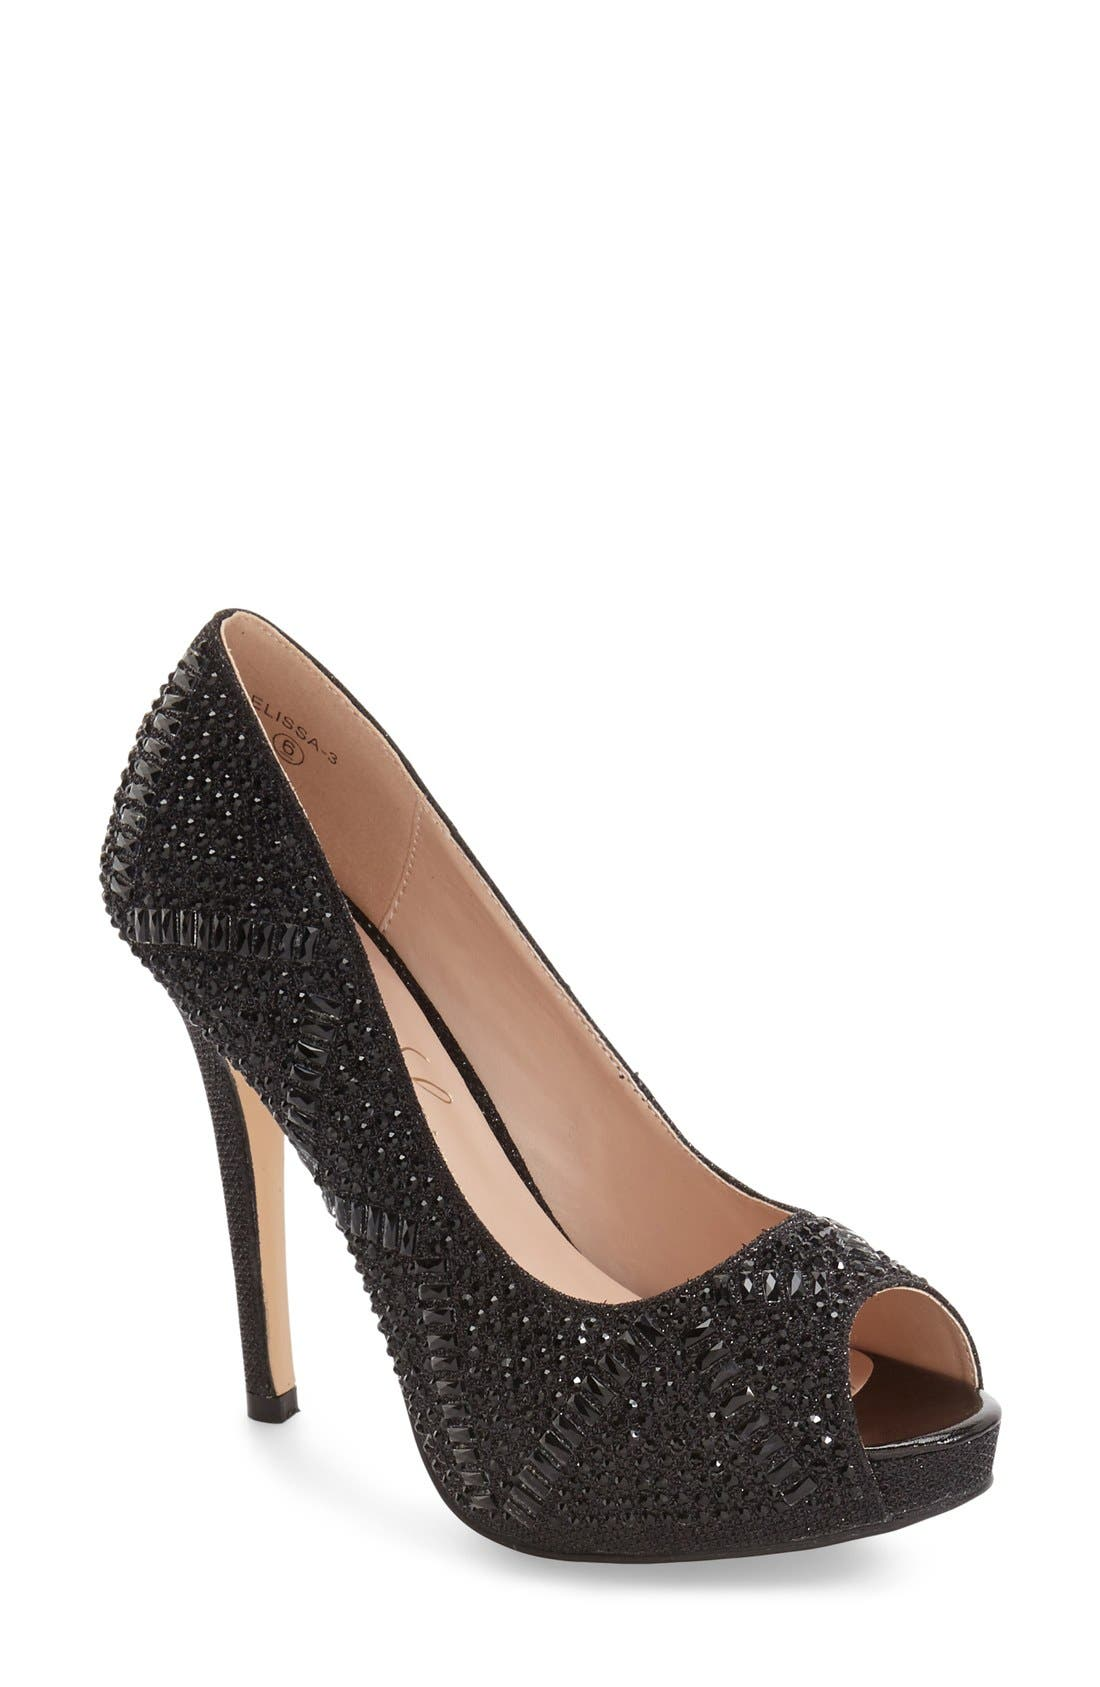 Elissa - 3 Peep Toe Pump,                             Main thumbnail 1, color,